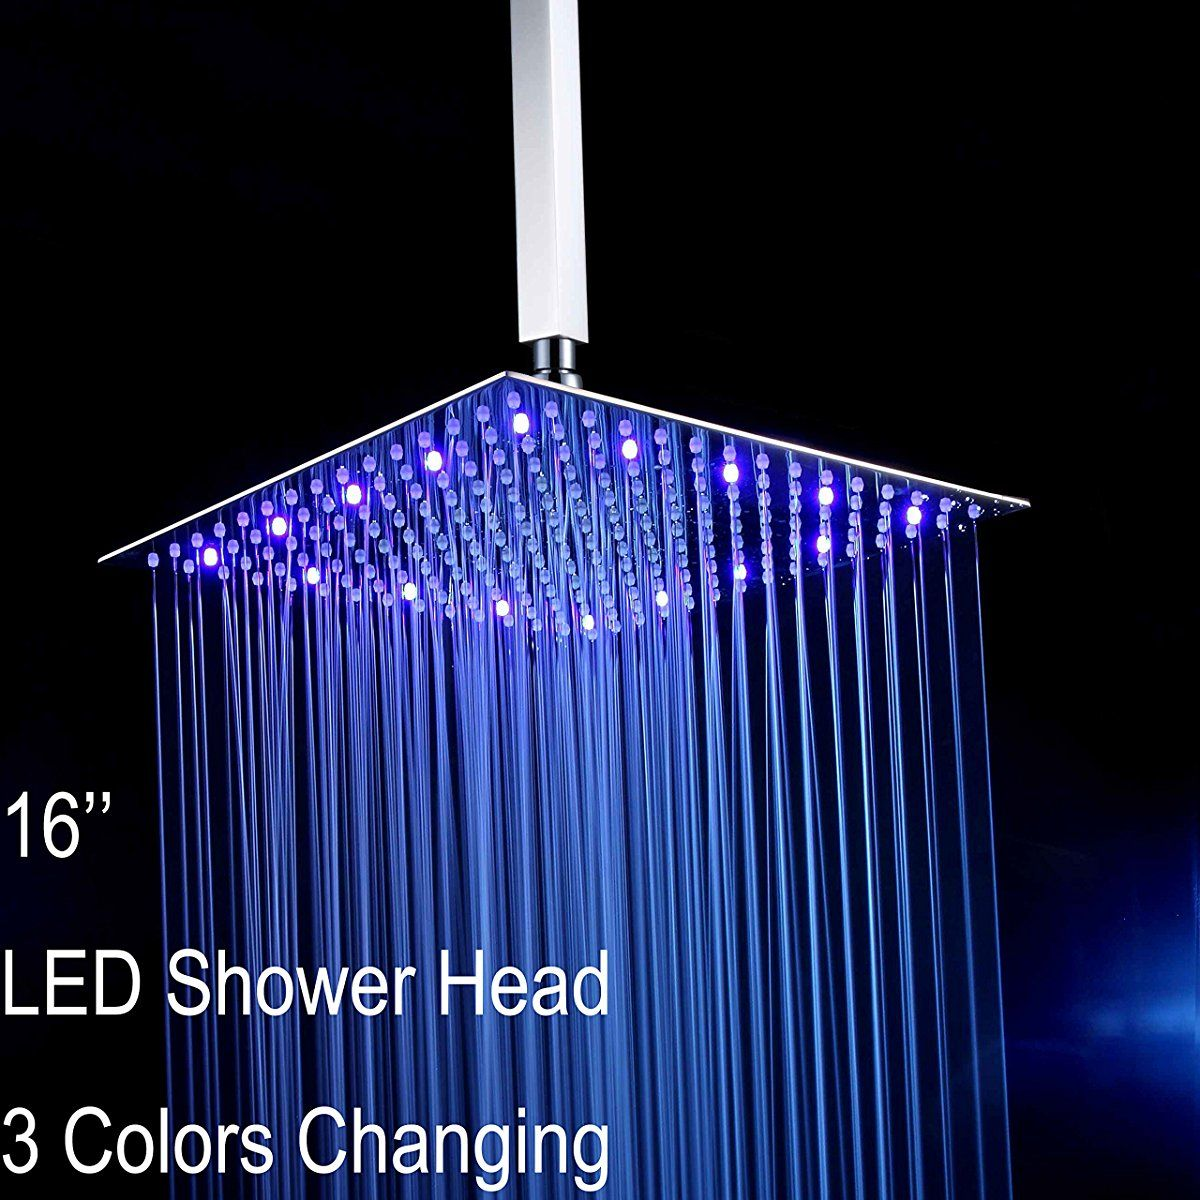 Ceiling Mounted Square LED Fixed Rainfall Shower Head | Stainless ...